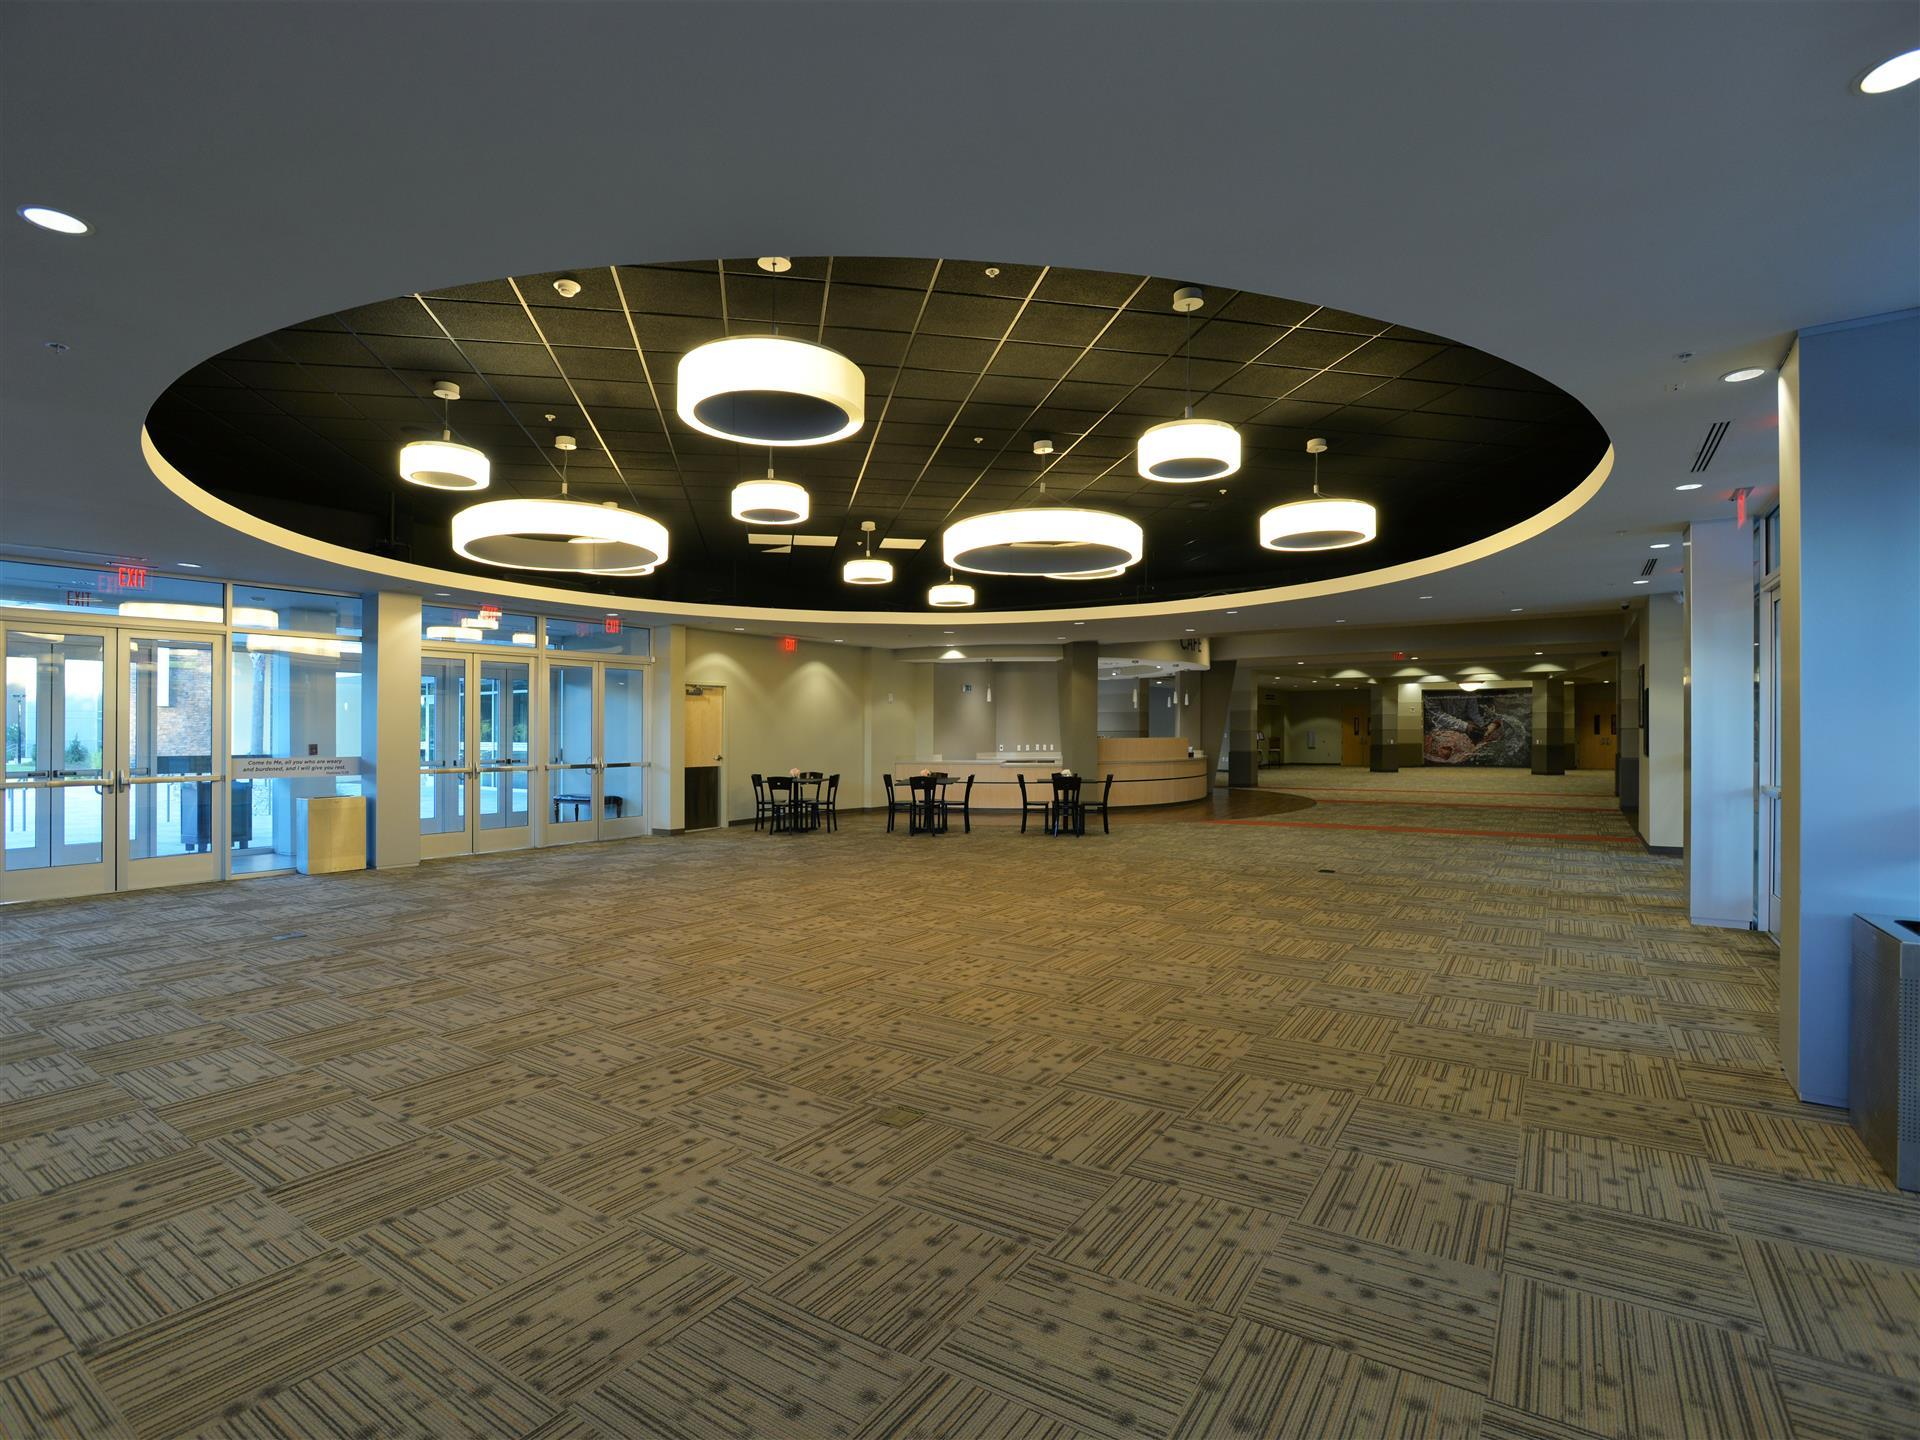 Open indoor lobby entrance with decorative lights in ceiling.